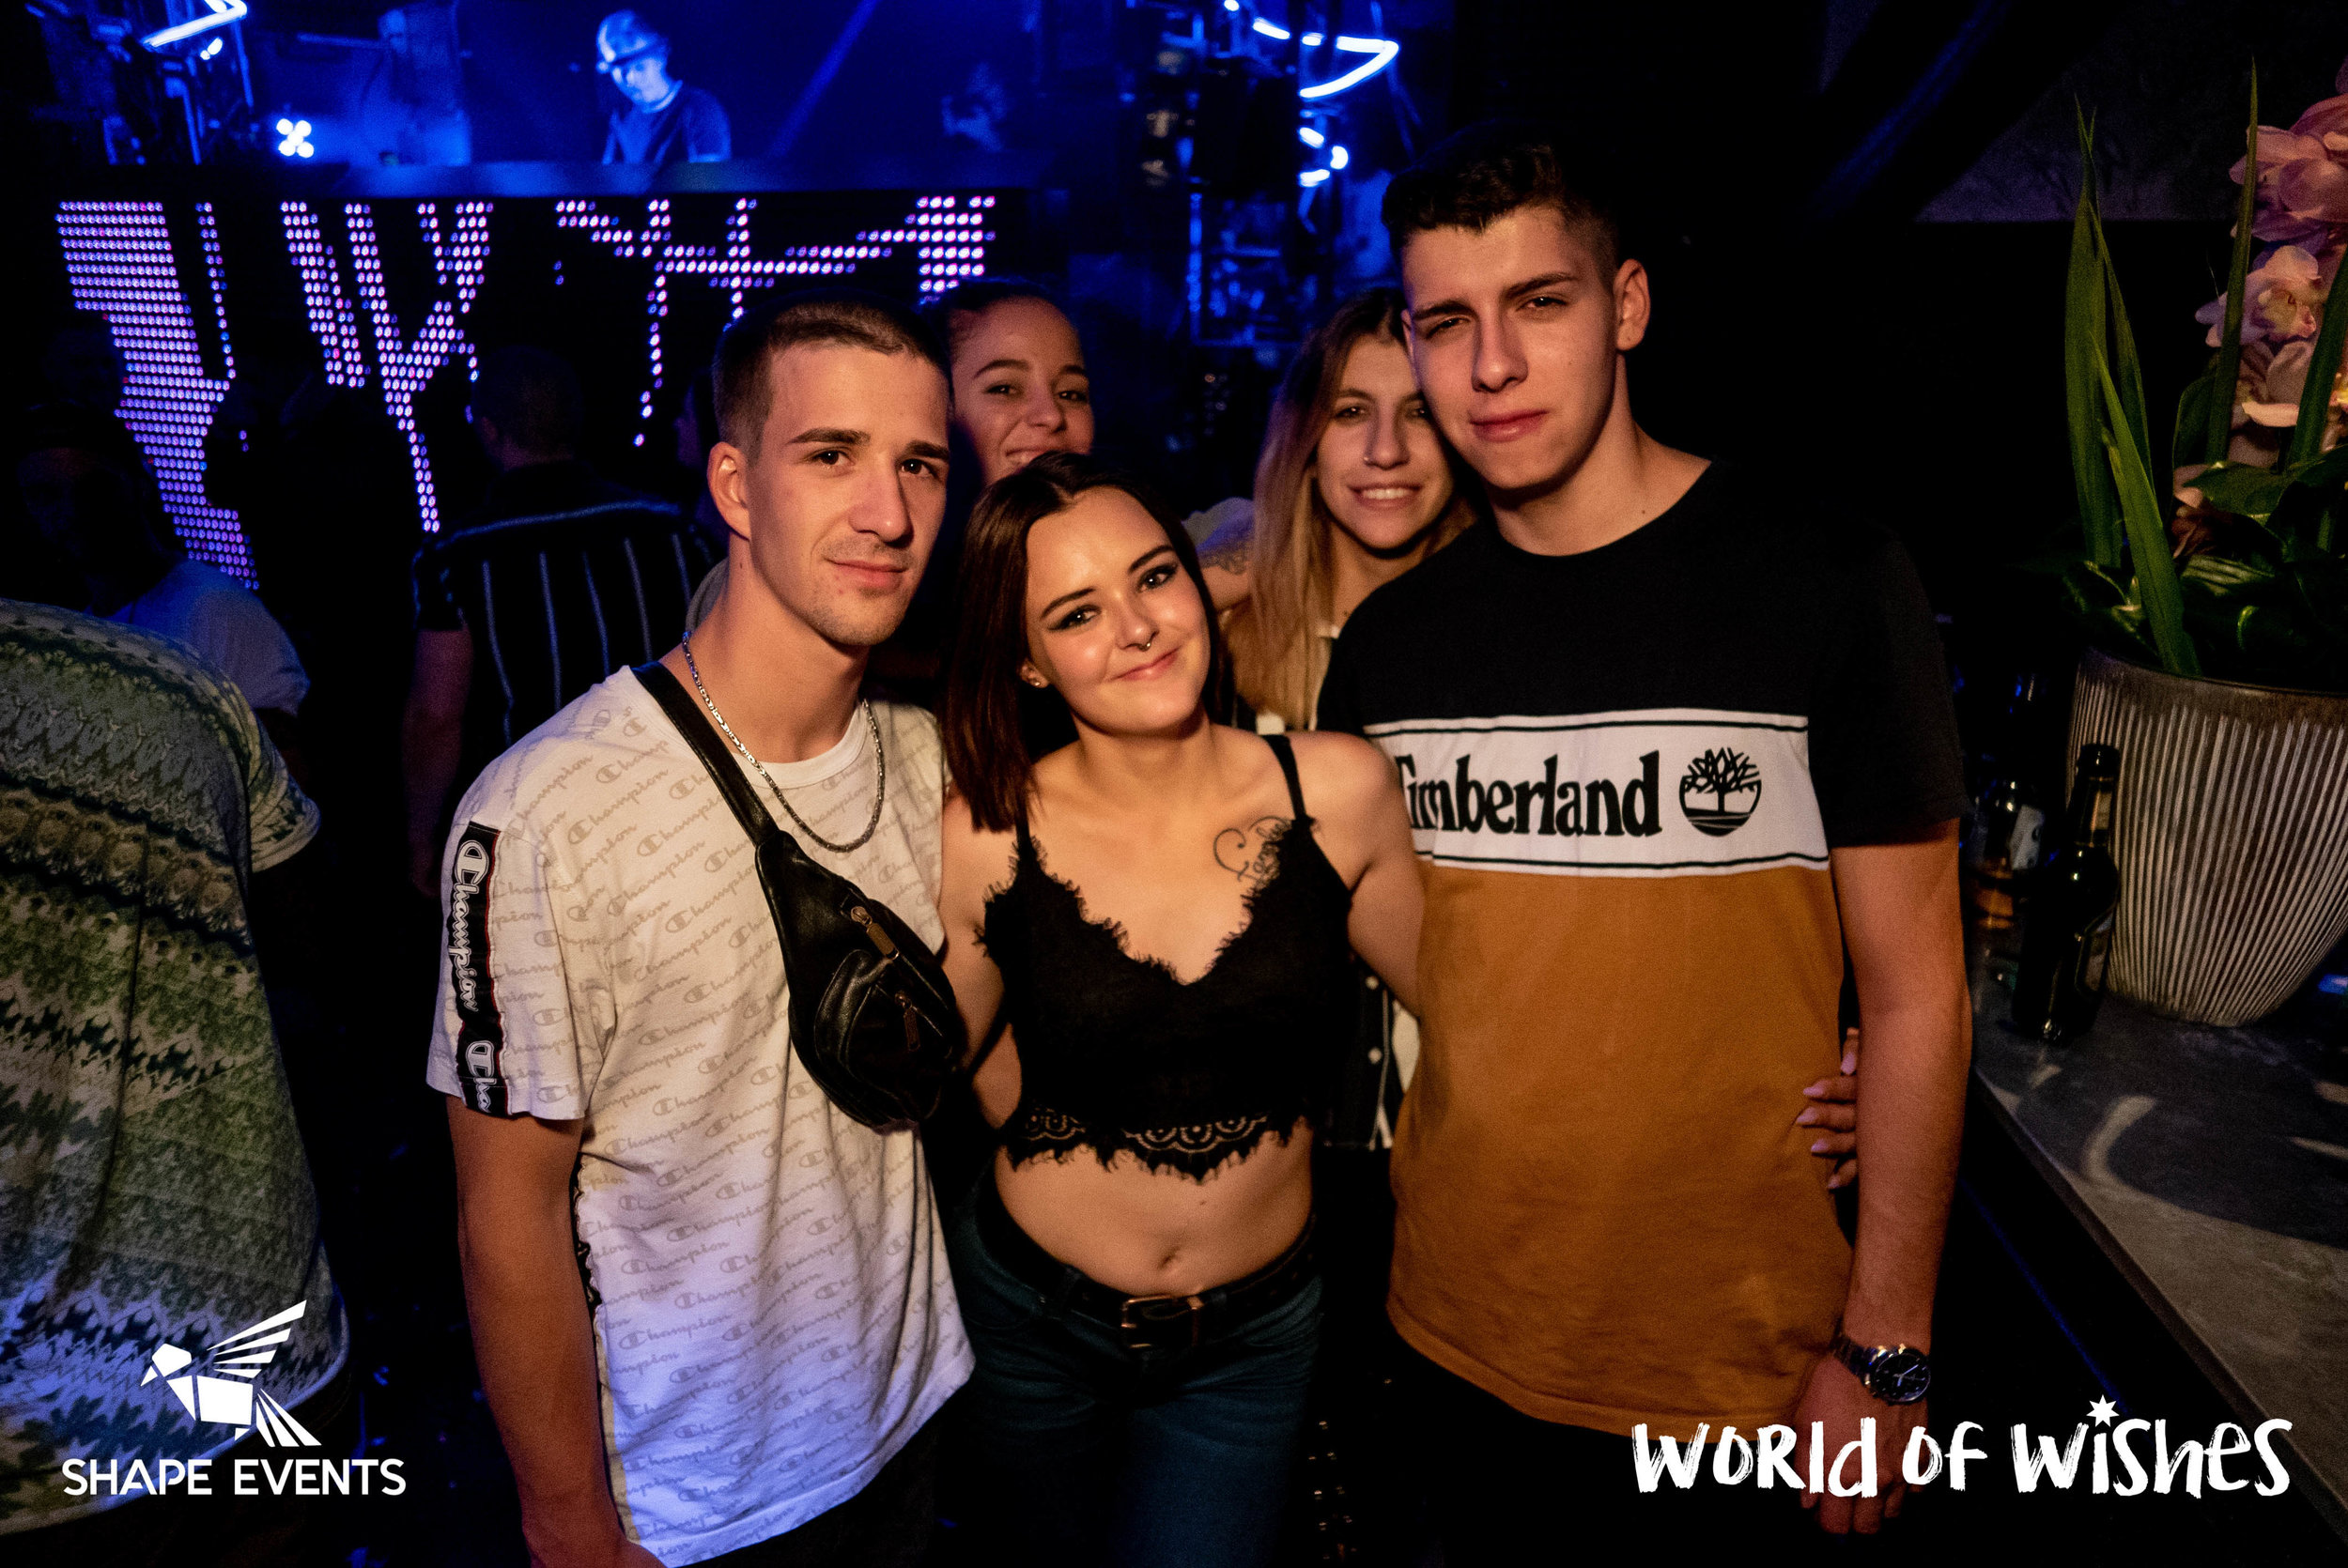 WordOfWishes_Party_Guest-02413.jpg